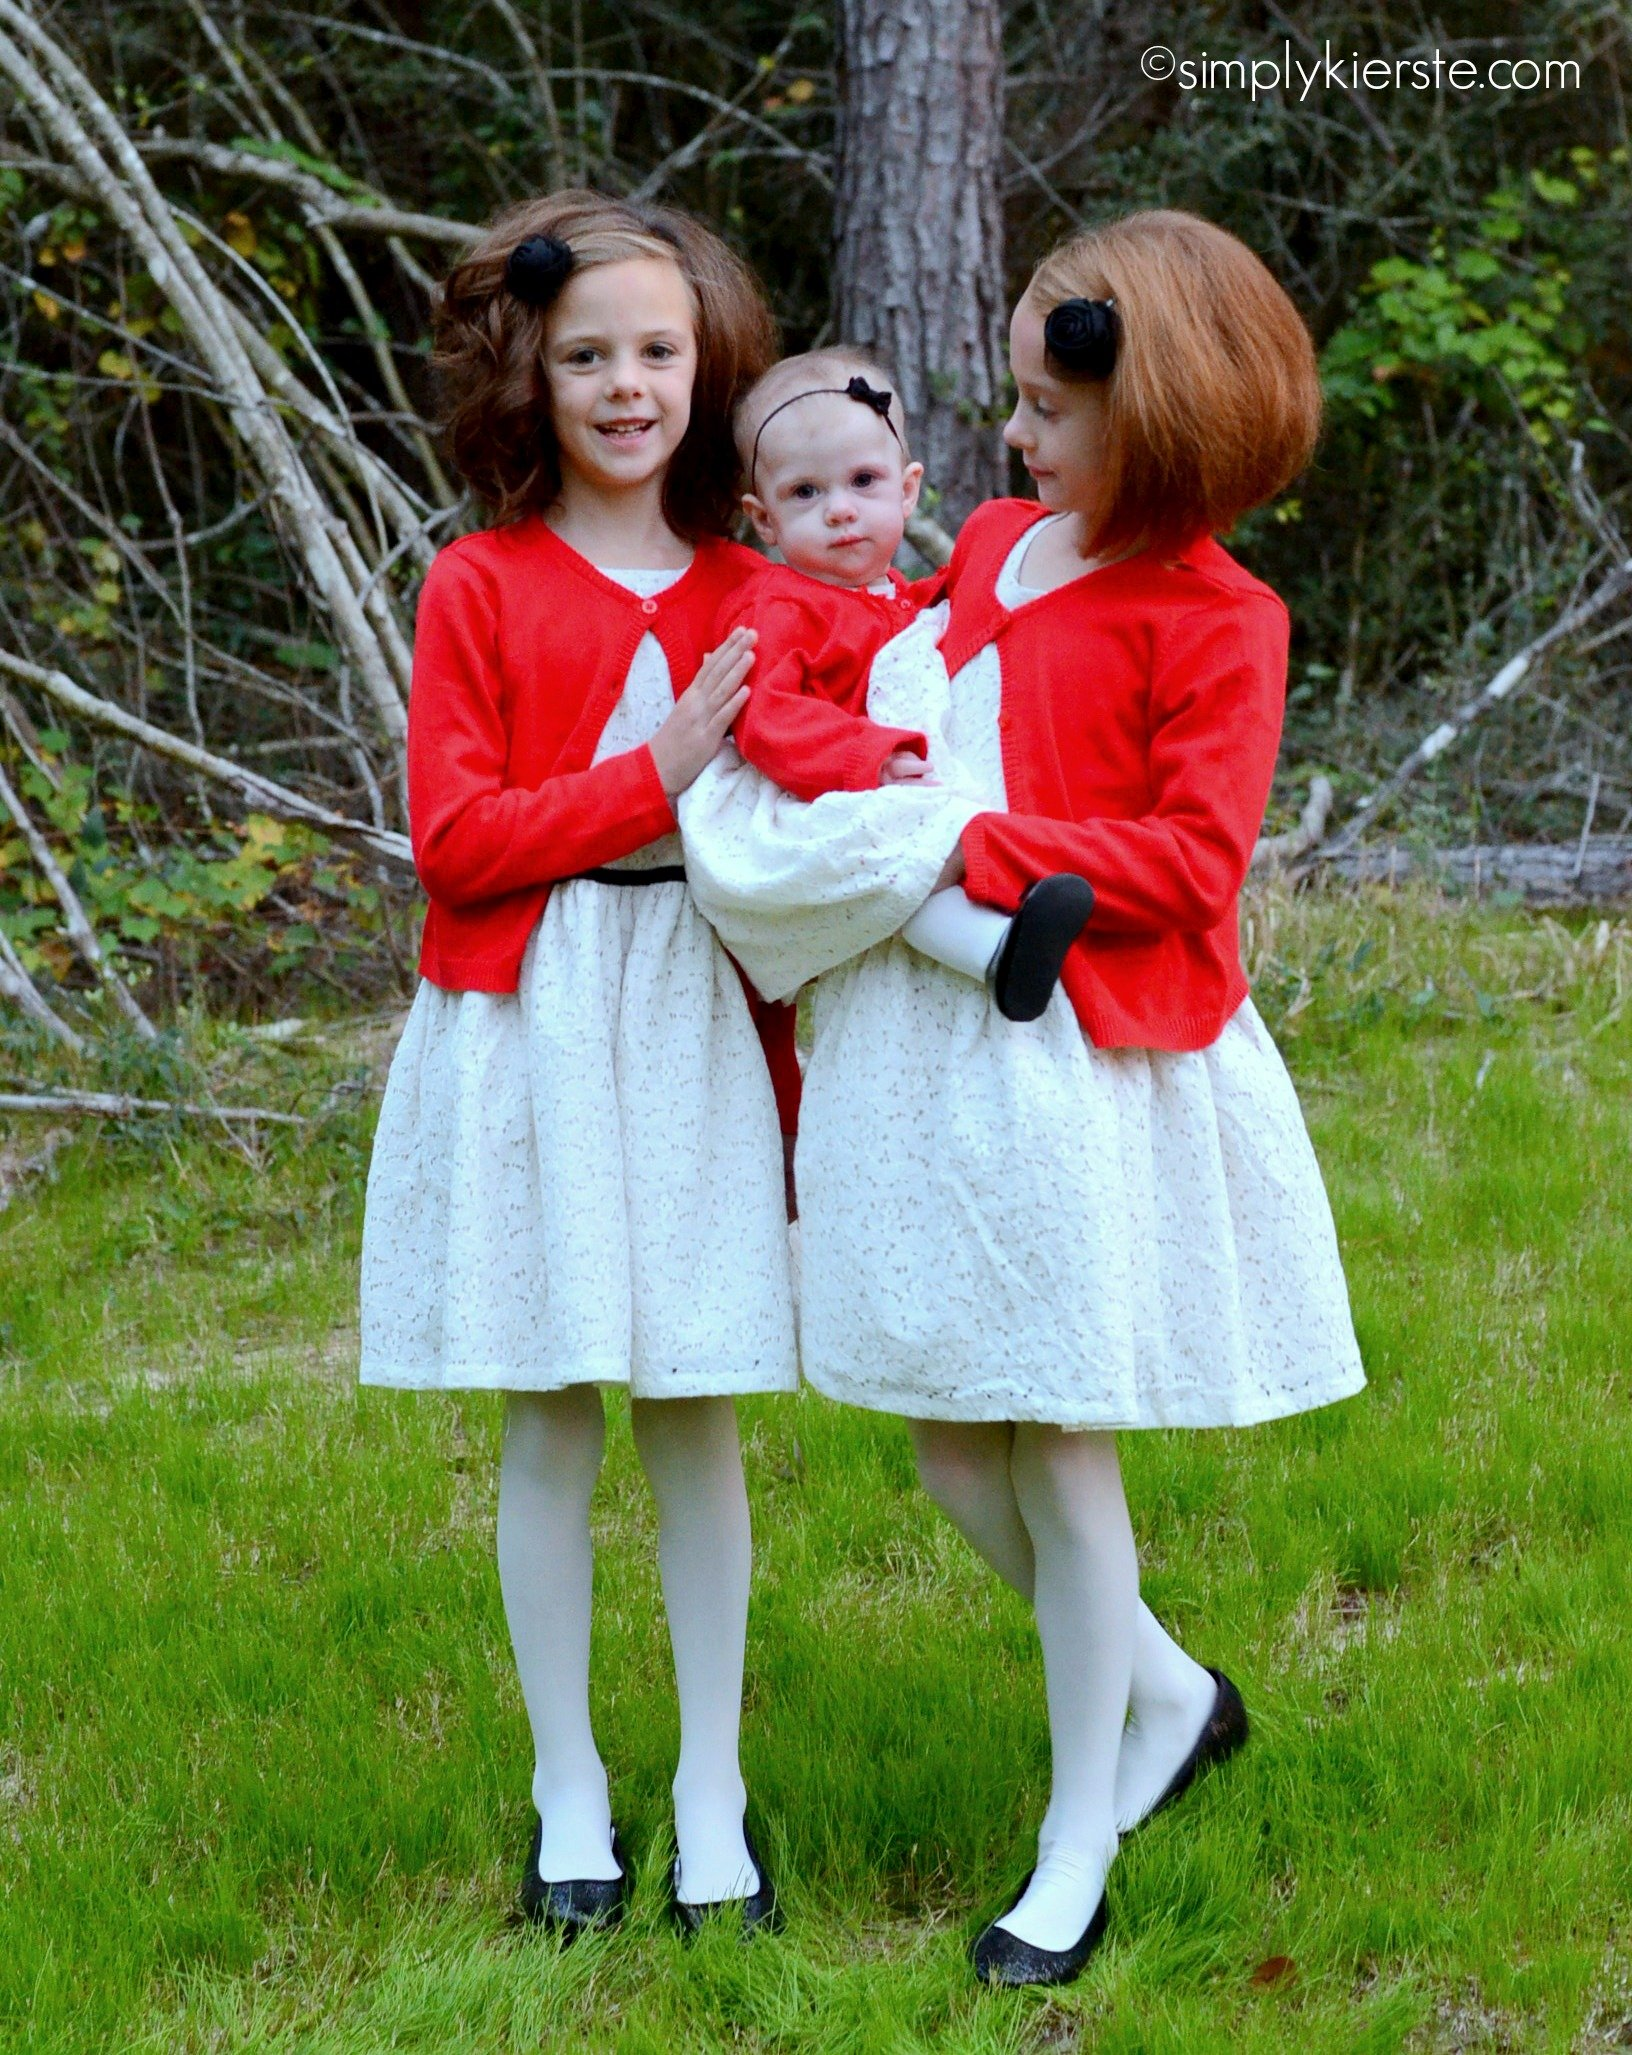 sister christmas dresses holiday photos with oshkosh bgosh simplykierste com